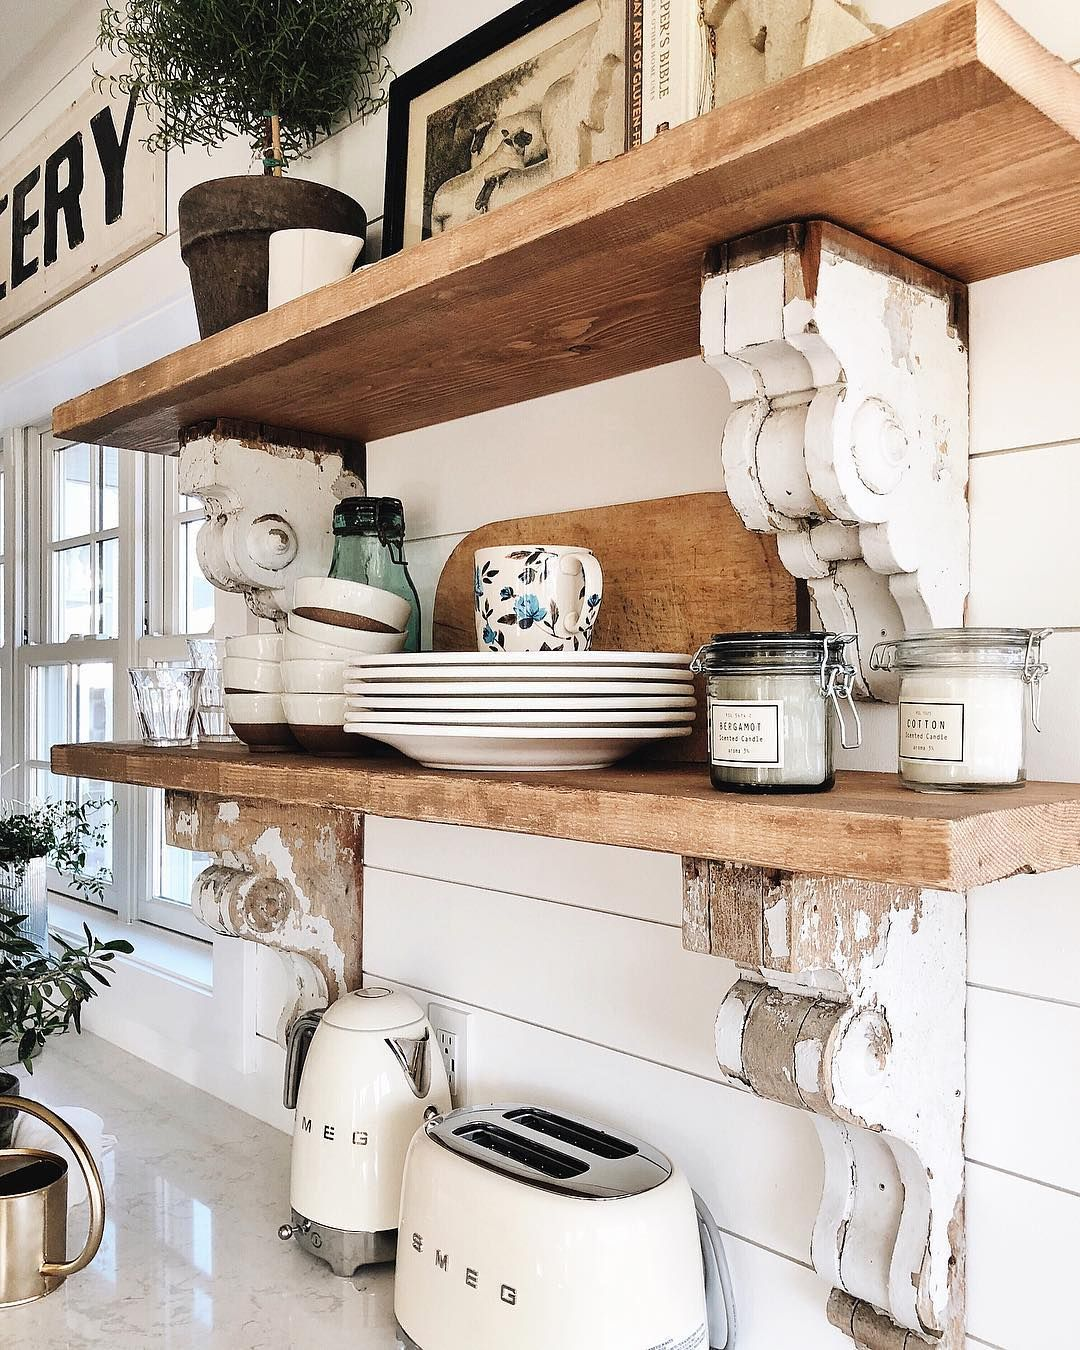 260 9k Followers 2 884 Following 3 832 Posts See Instagram Photos And Videos From Liz Marie Blog Lizmariegalvan At Home Kitchen Styling Kitchen She